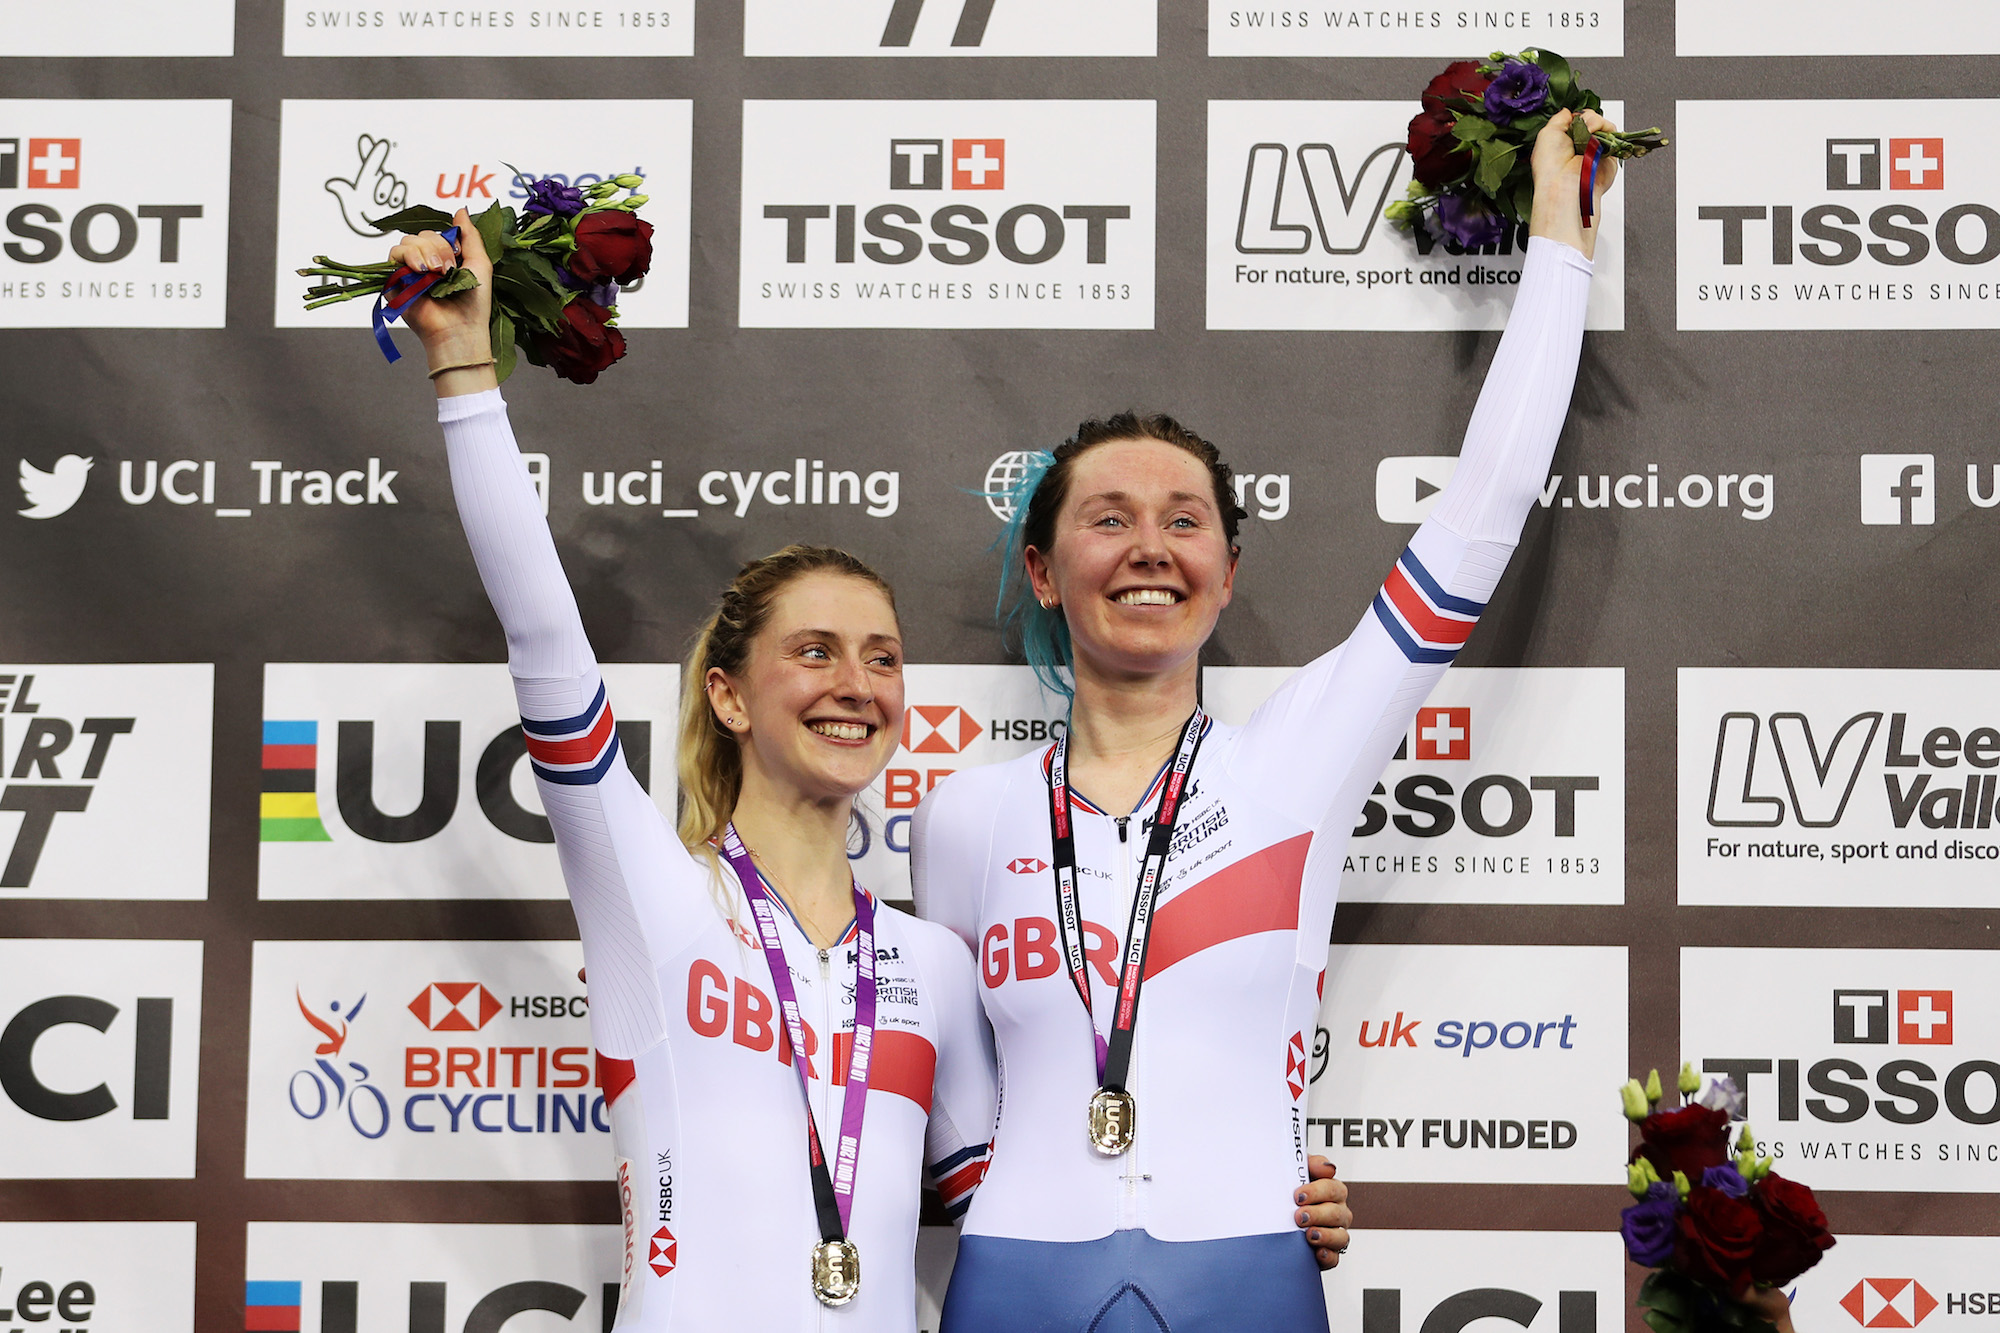 Laura Kenny and Katie Archibald take Madison silver at European Track Championships